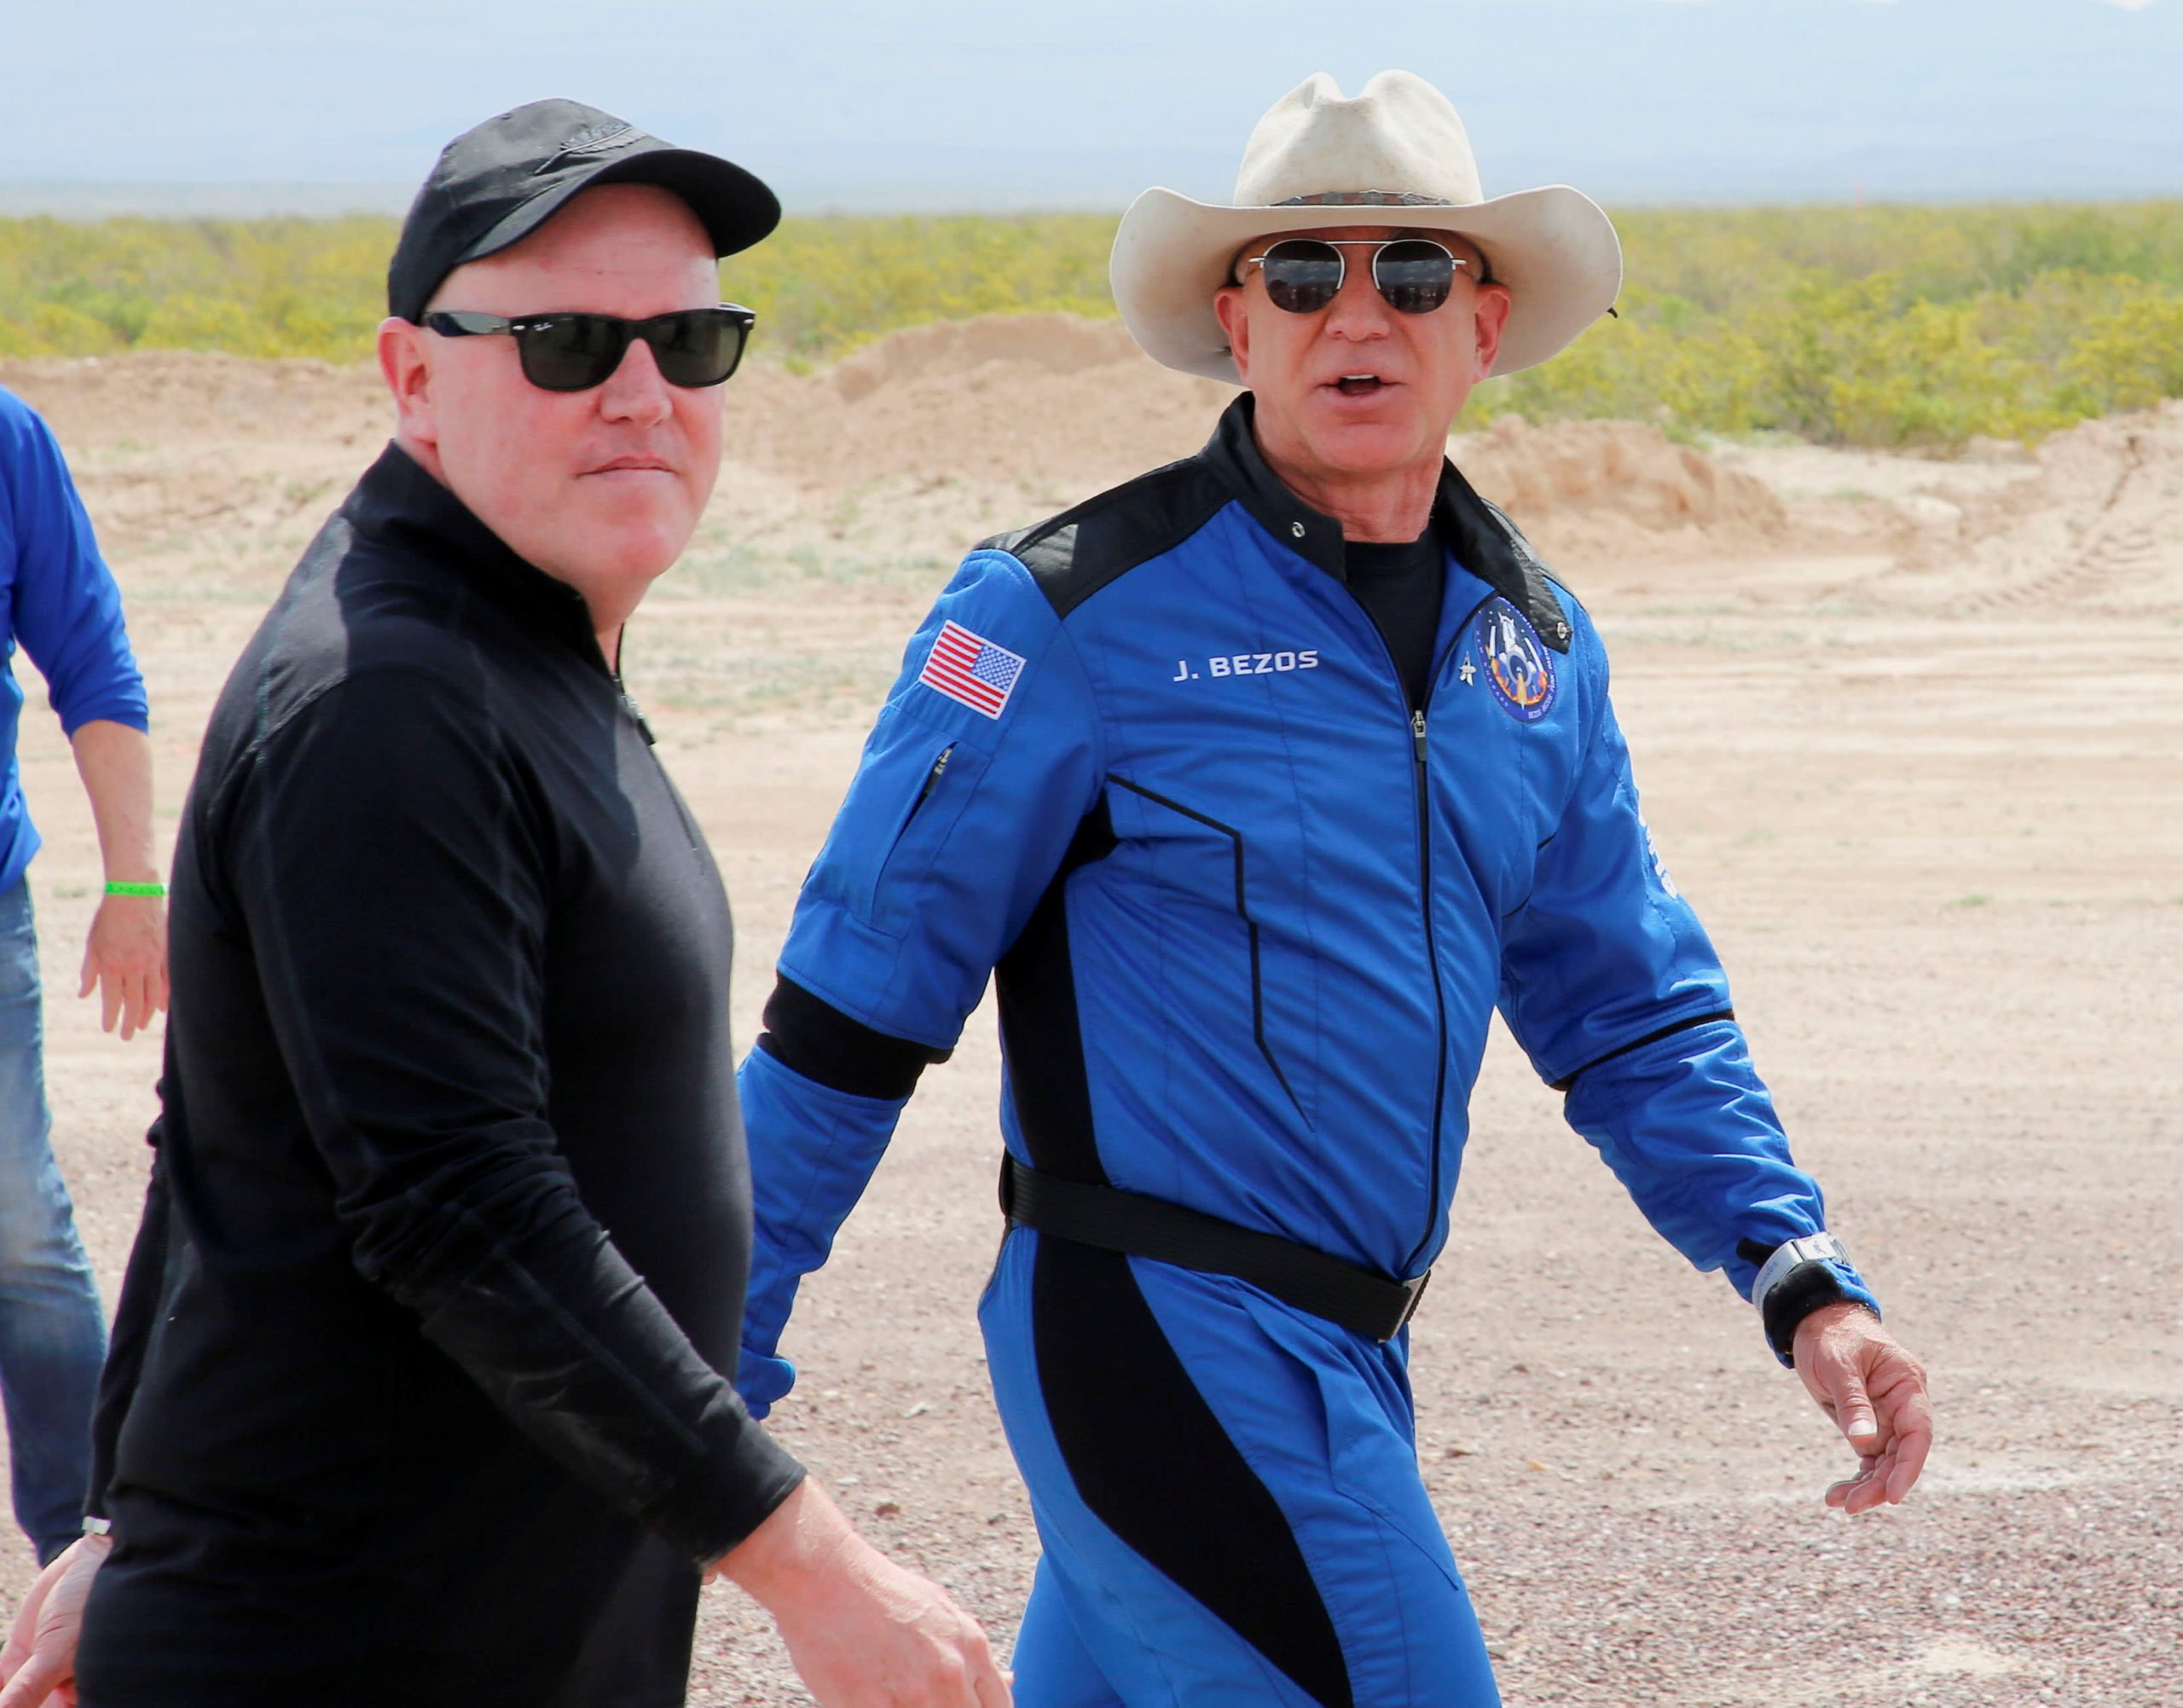 Bezos' Blue Origin takes NASA to federal court over award of lunar lander contract to SpaceX